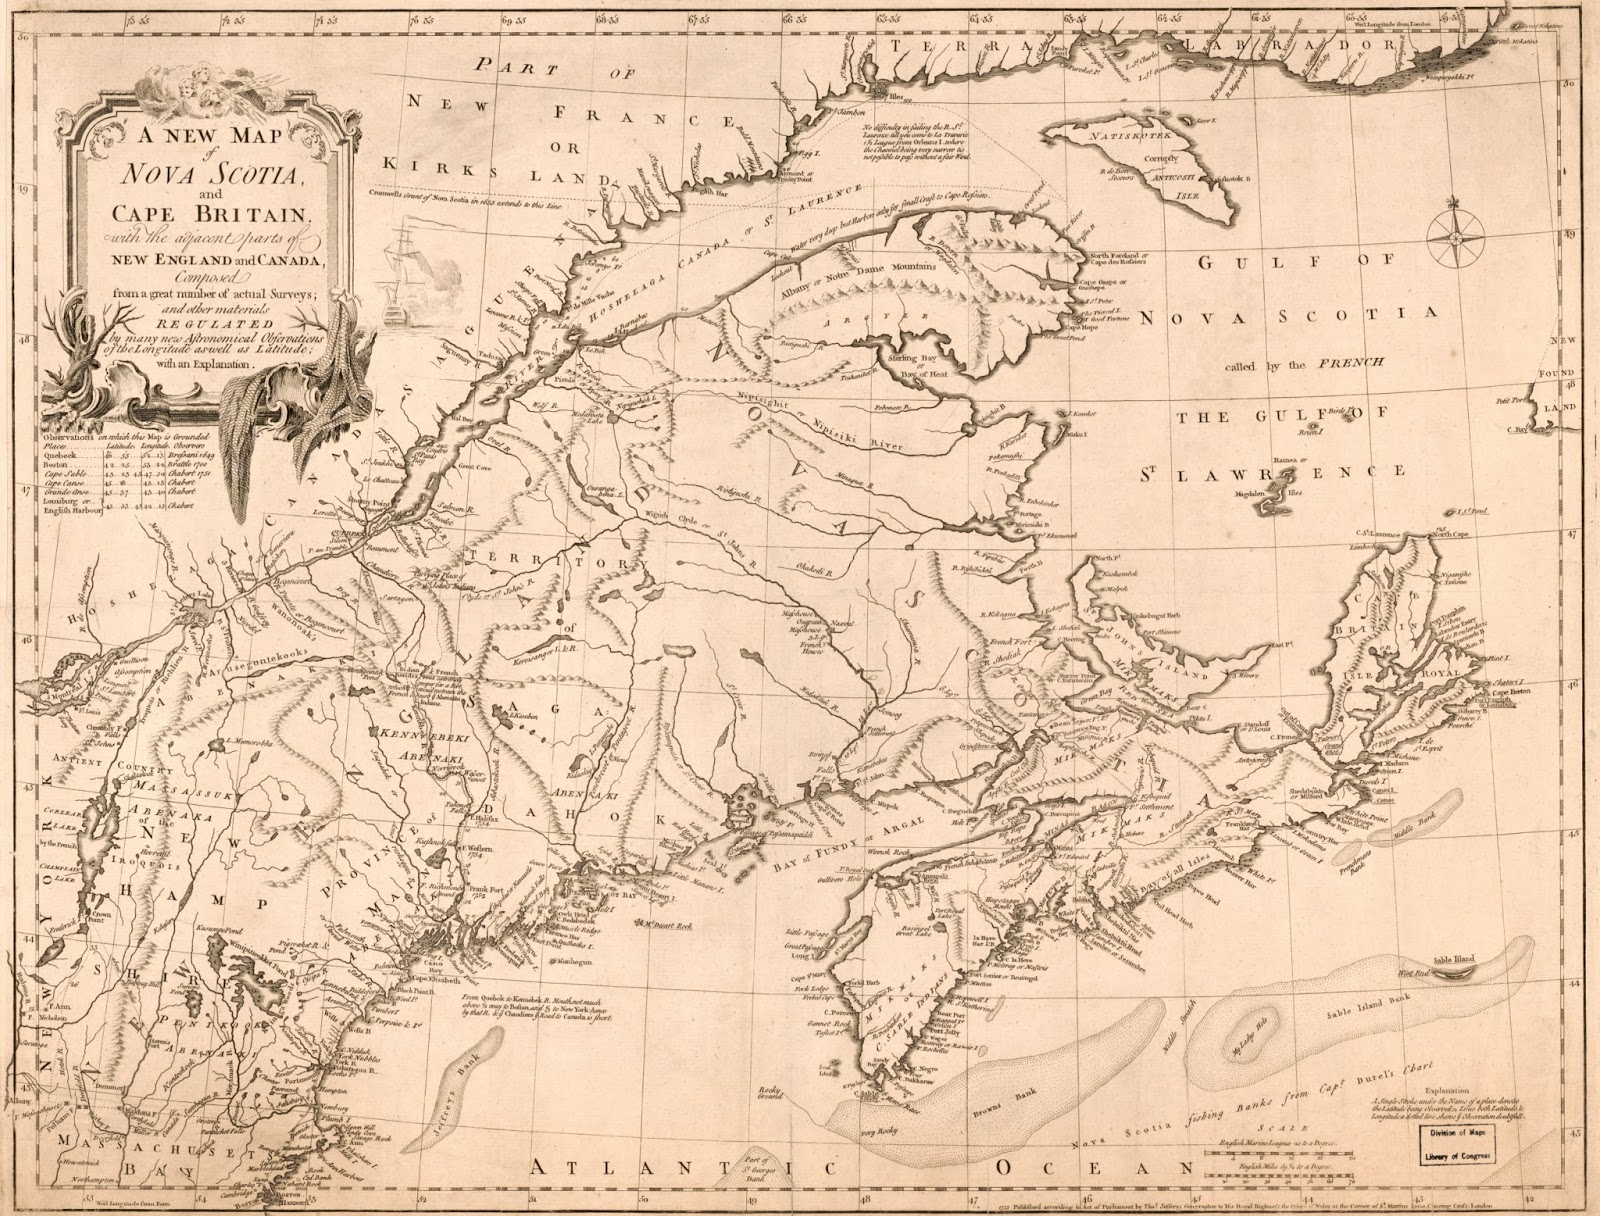 vaugondy s map naturally provoked a british response with this map by bradock mead which shows nova scotia as extending from the peninsula all the way to